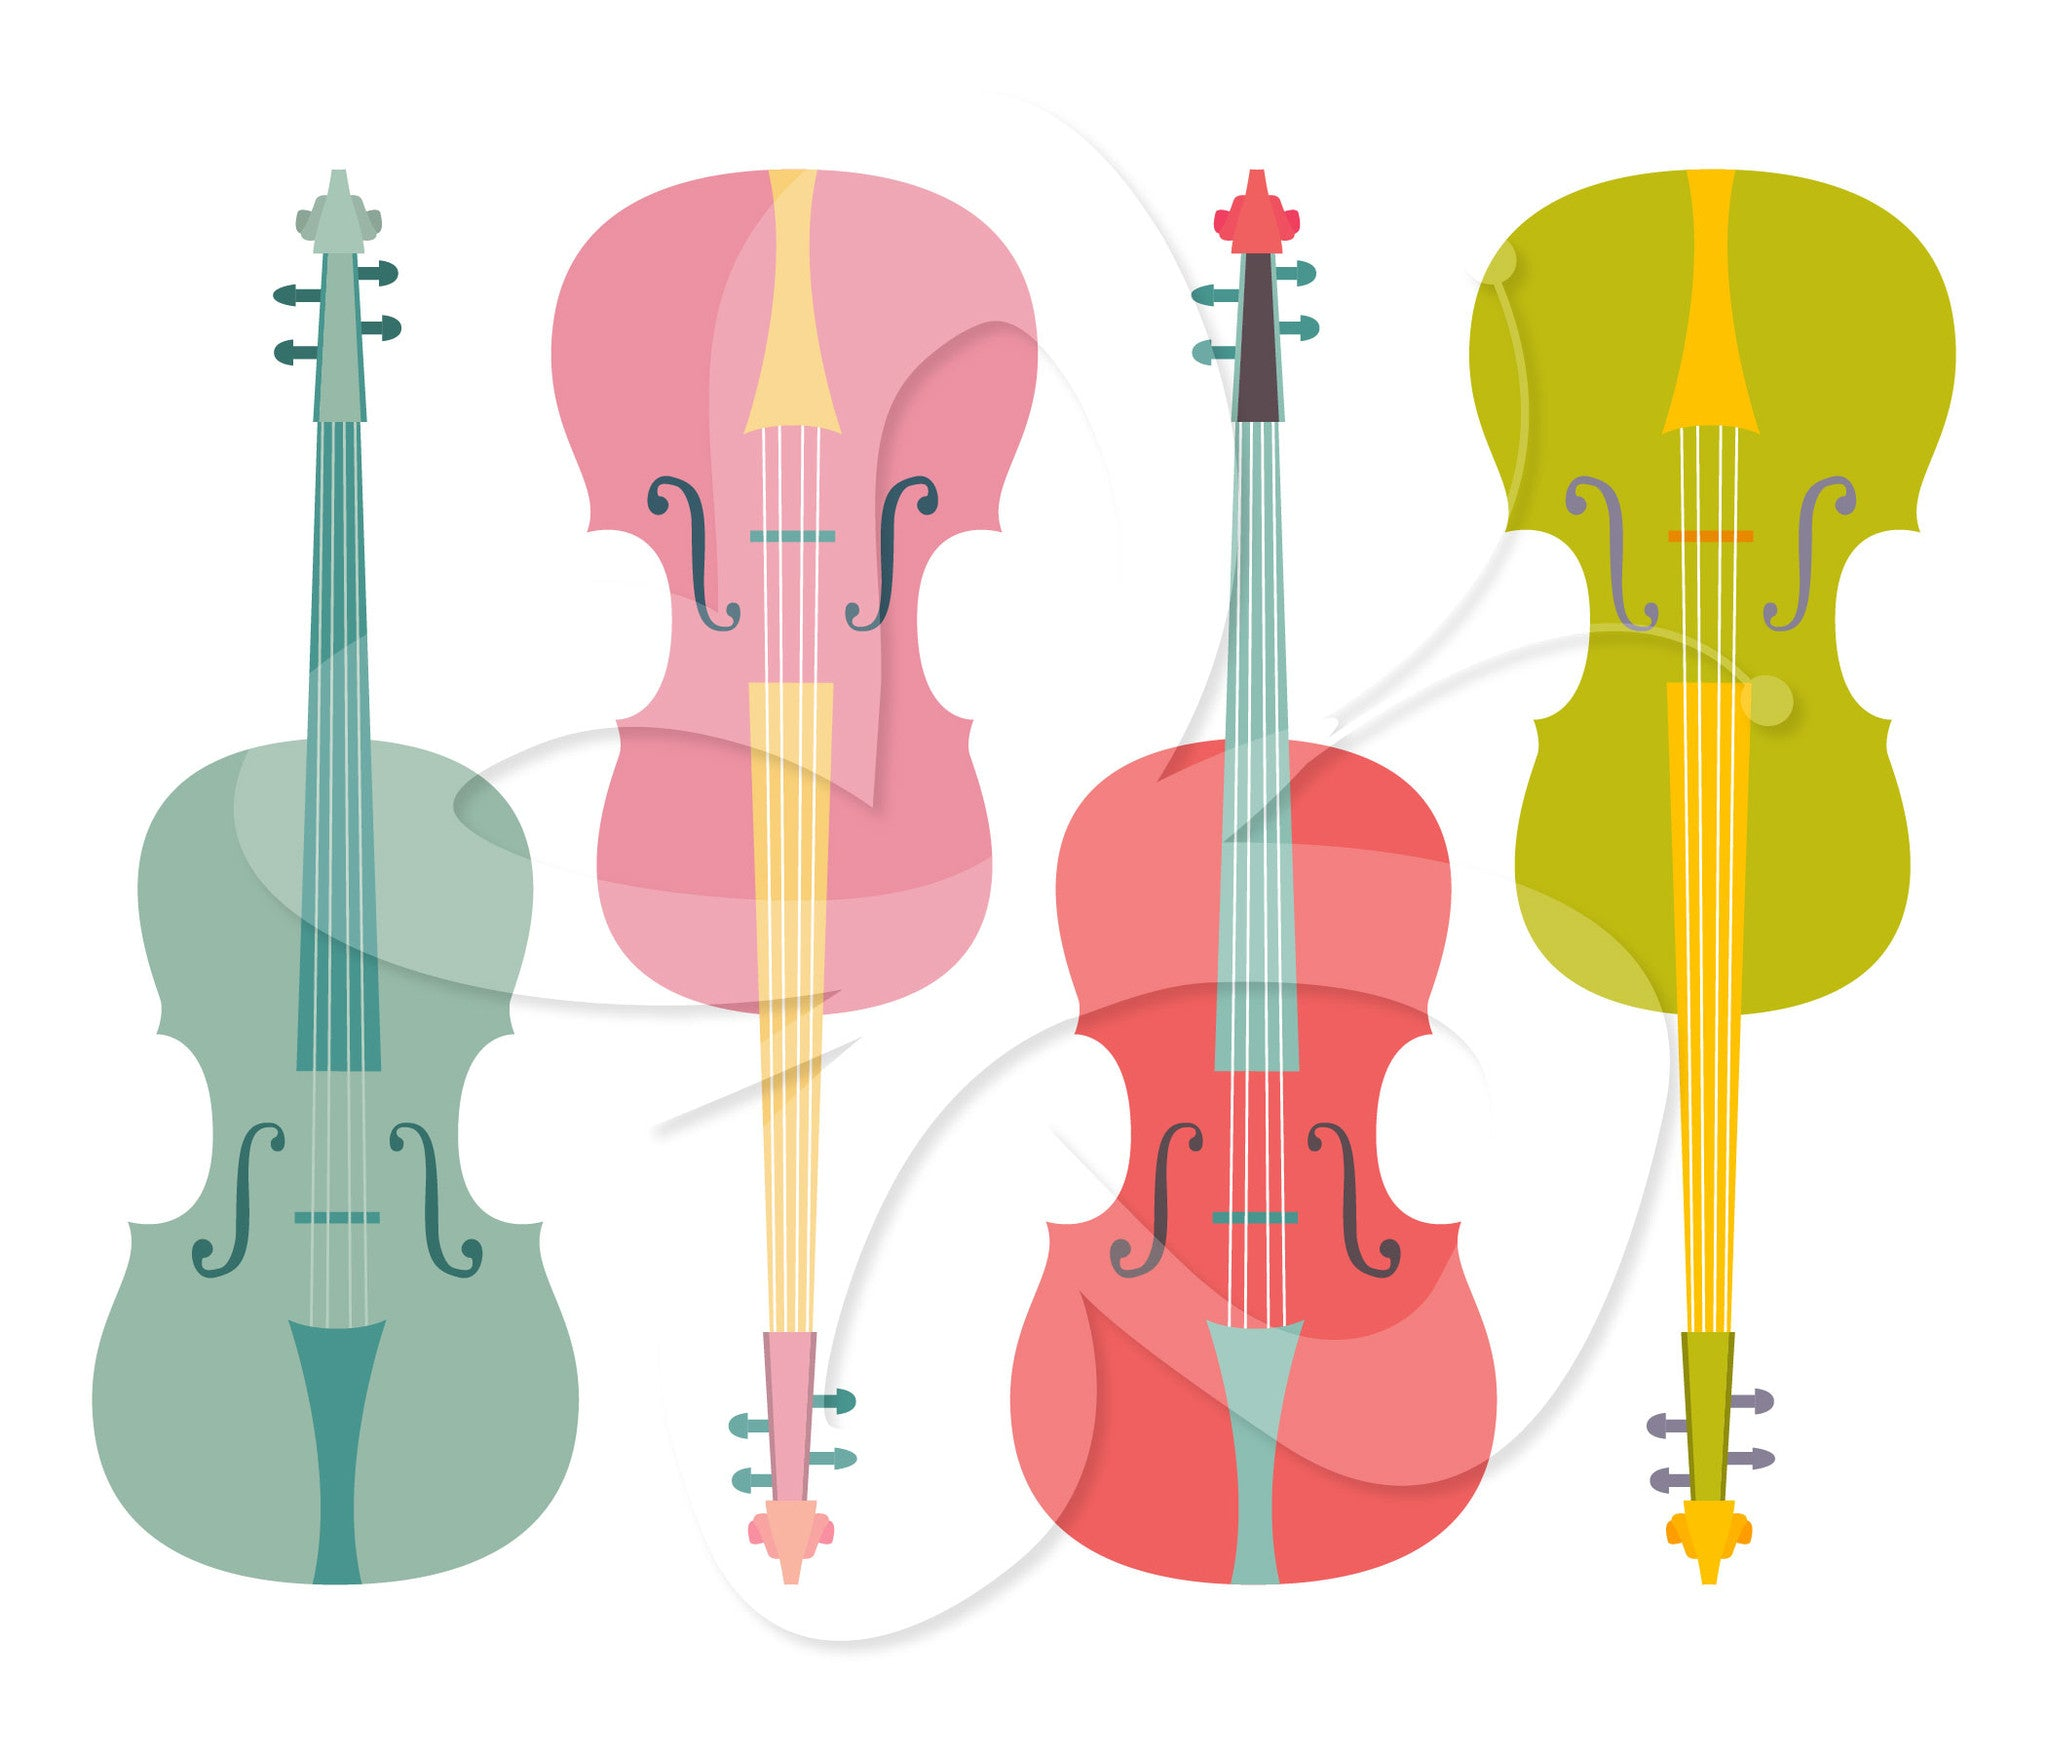 Violin lesson (8 private sessions) - Each session for 30 min